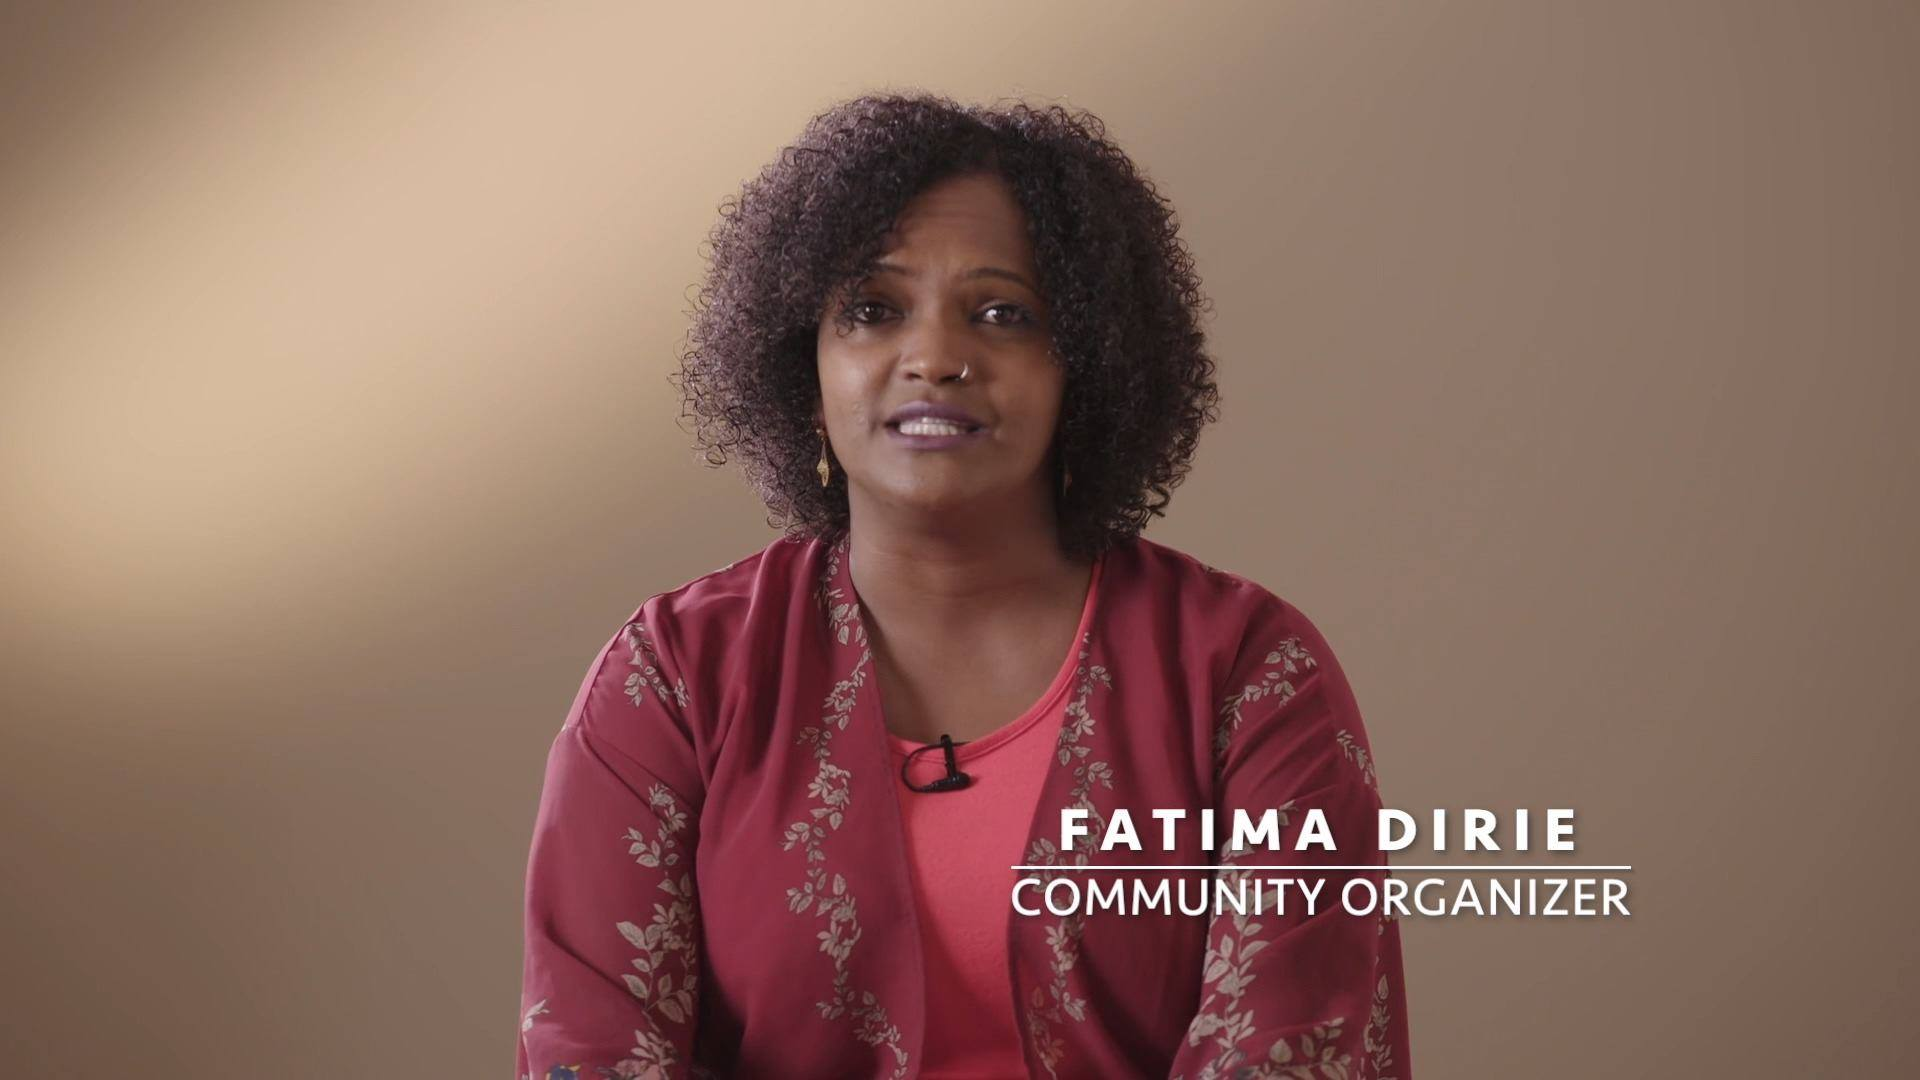 Fatima Dirie Endorses Luz for Mayor